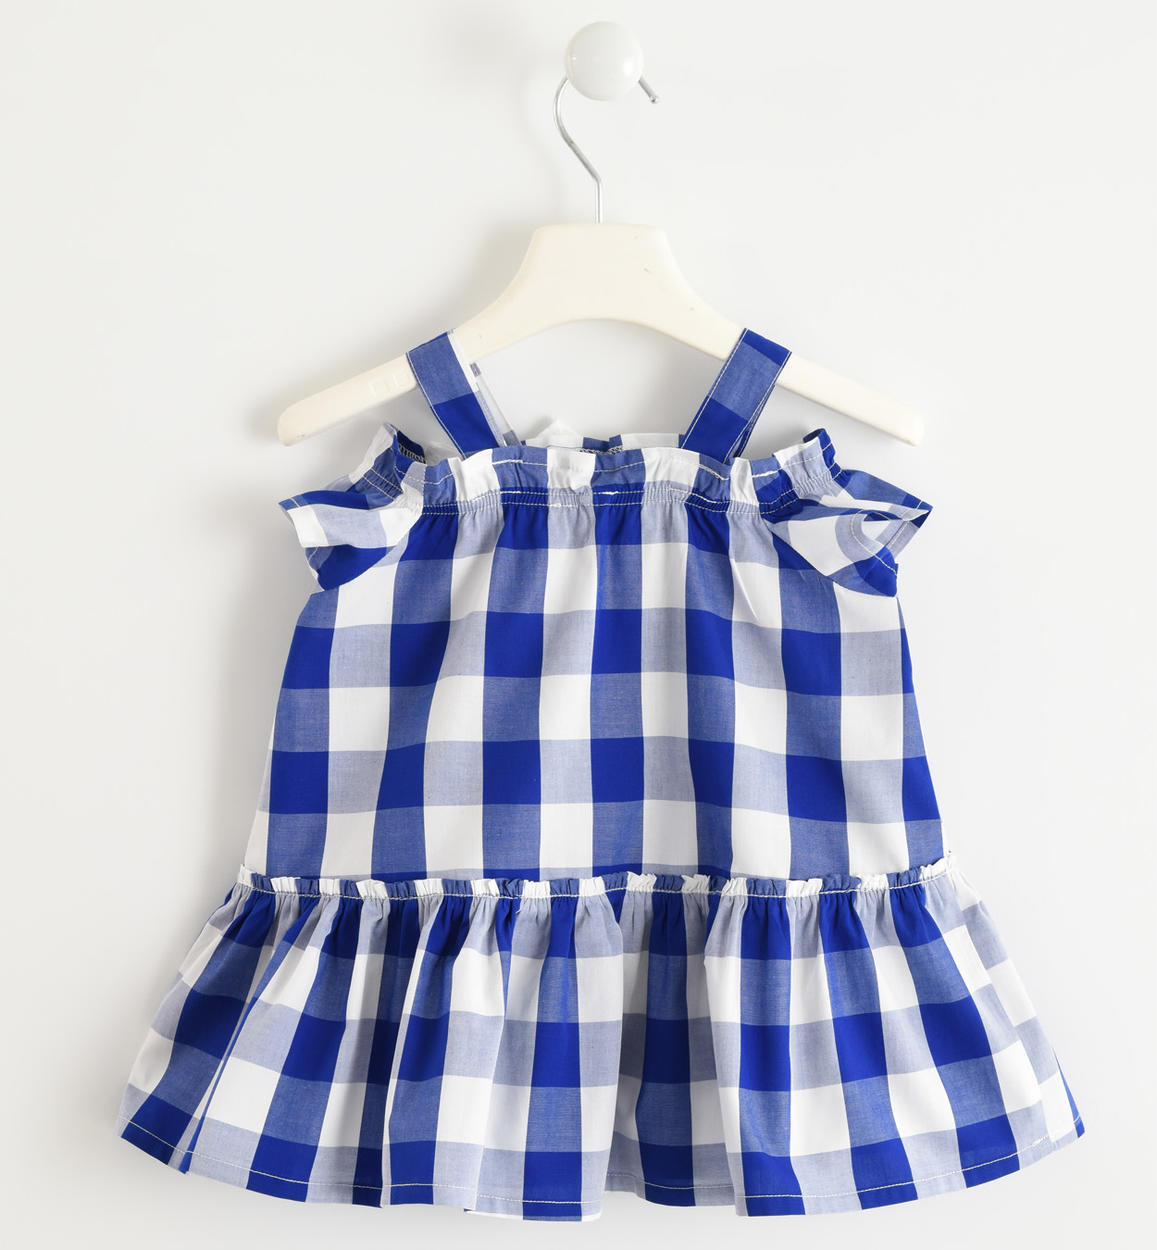 25231fde8 100% cotton dress with check pattern for baby girls from 6 months to ...